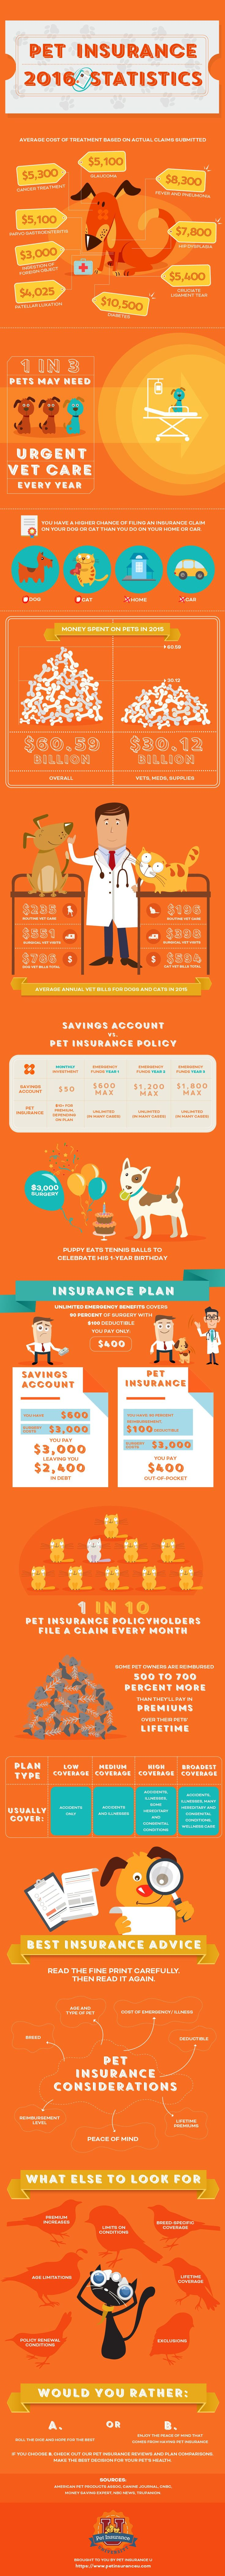 Find out everything you need to know about pet in surance using this beautiful infographic. Updated in 2016 with facts, statistics, data and funny, adorable artwork of cats and dogs.